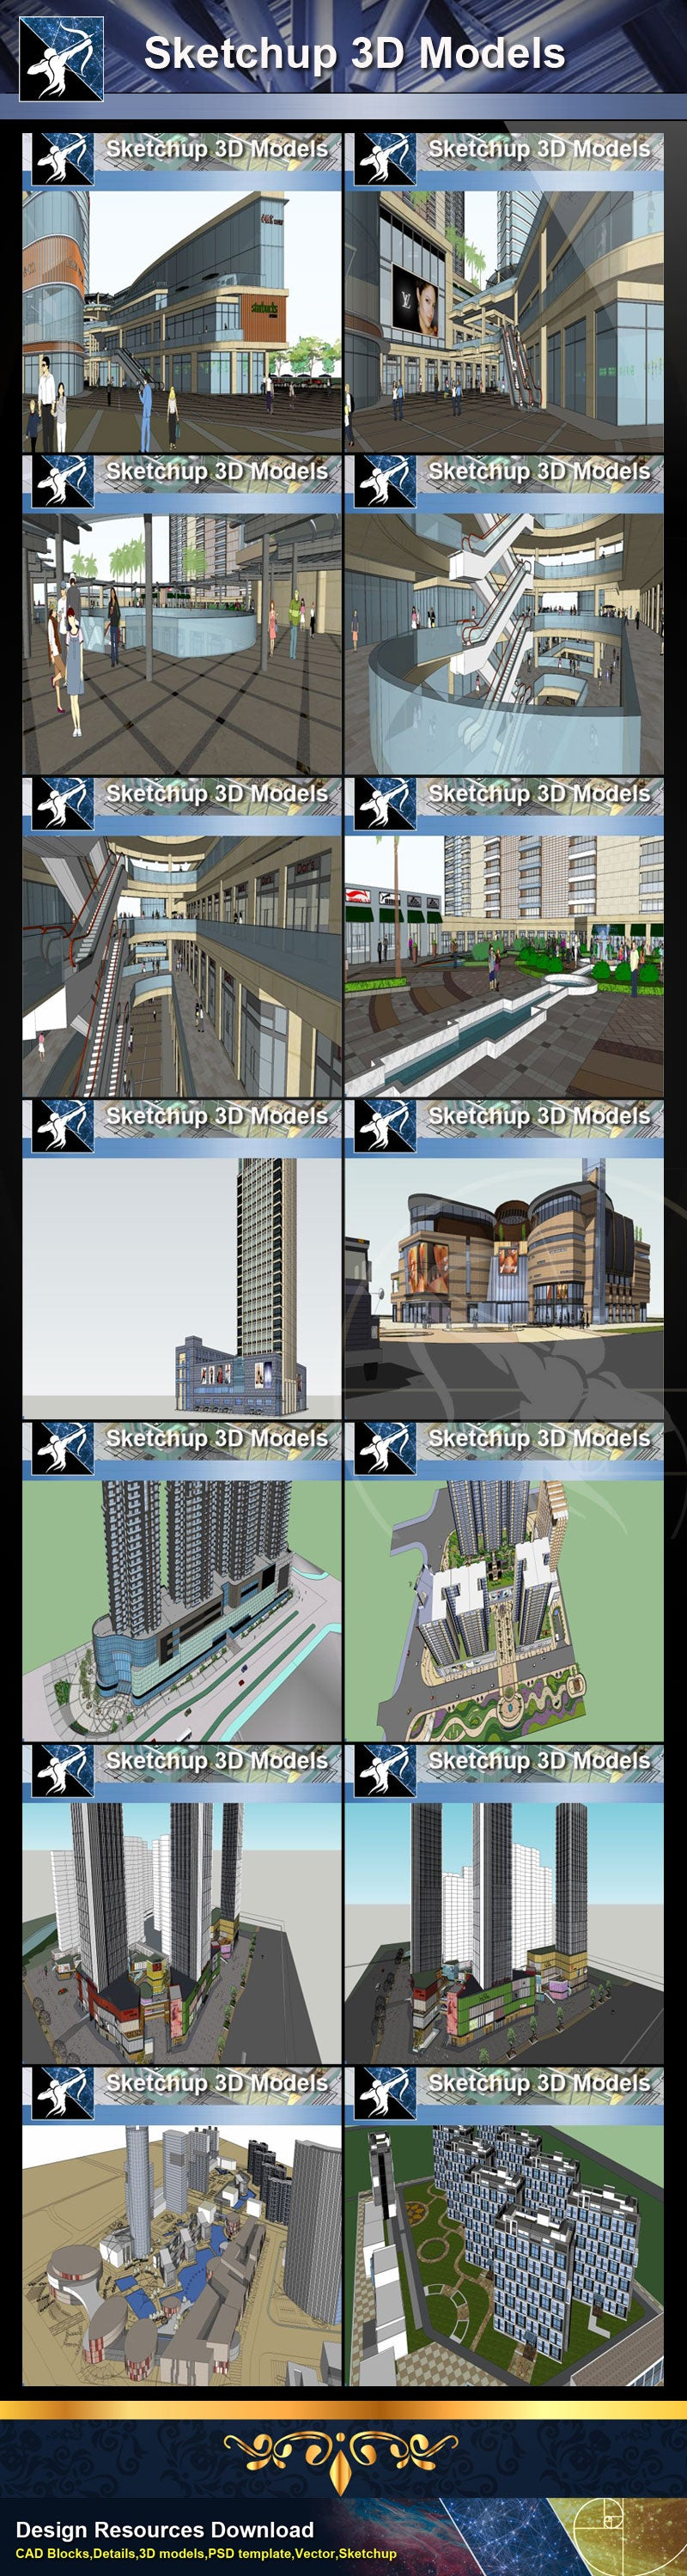 ★Best 50 Types of City Design,Commercial Building Sketchup 3D Models Collection(Recommanded!!)